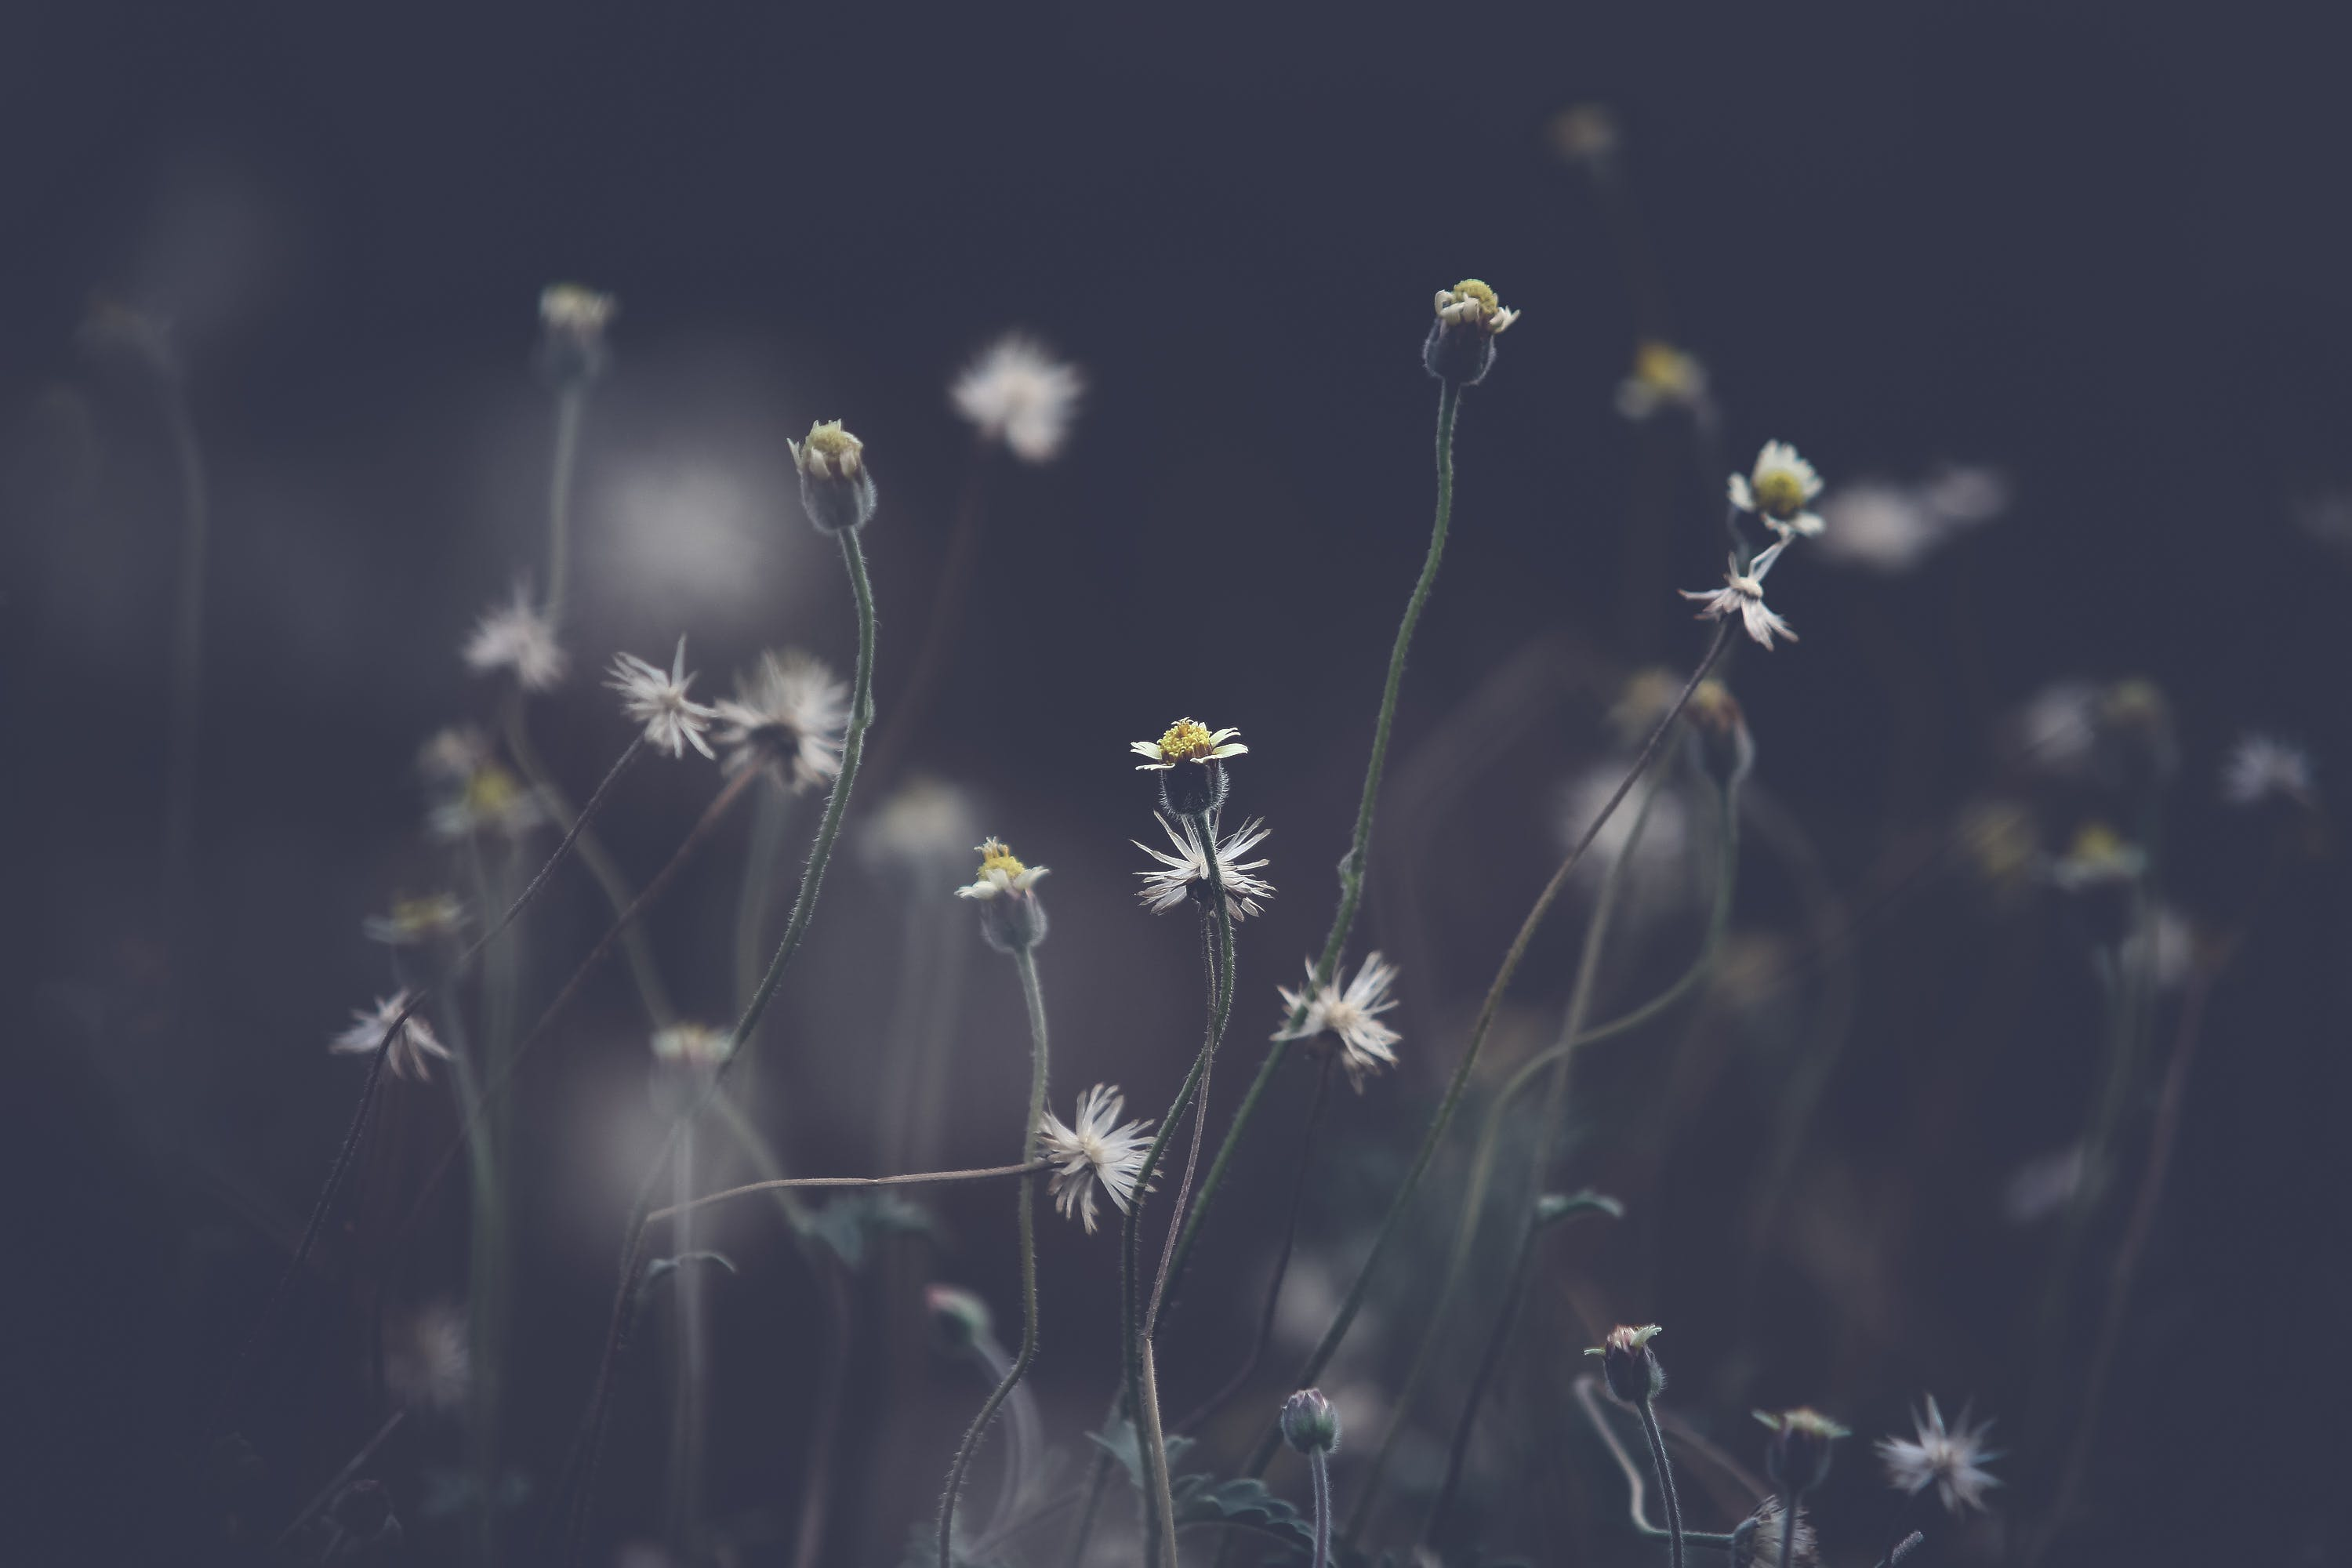 Grayscale Photo of Petaled Flowers